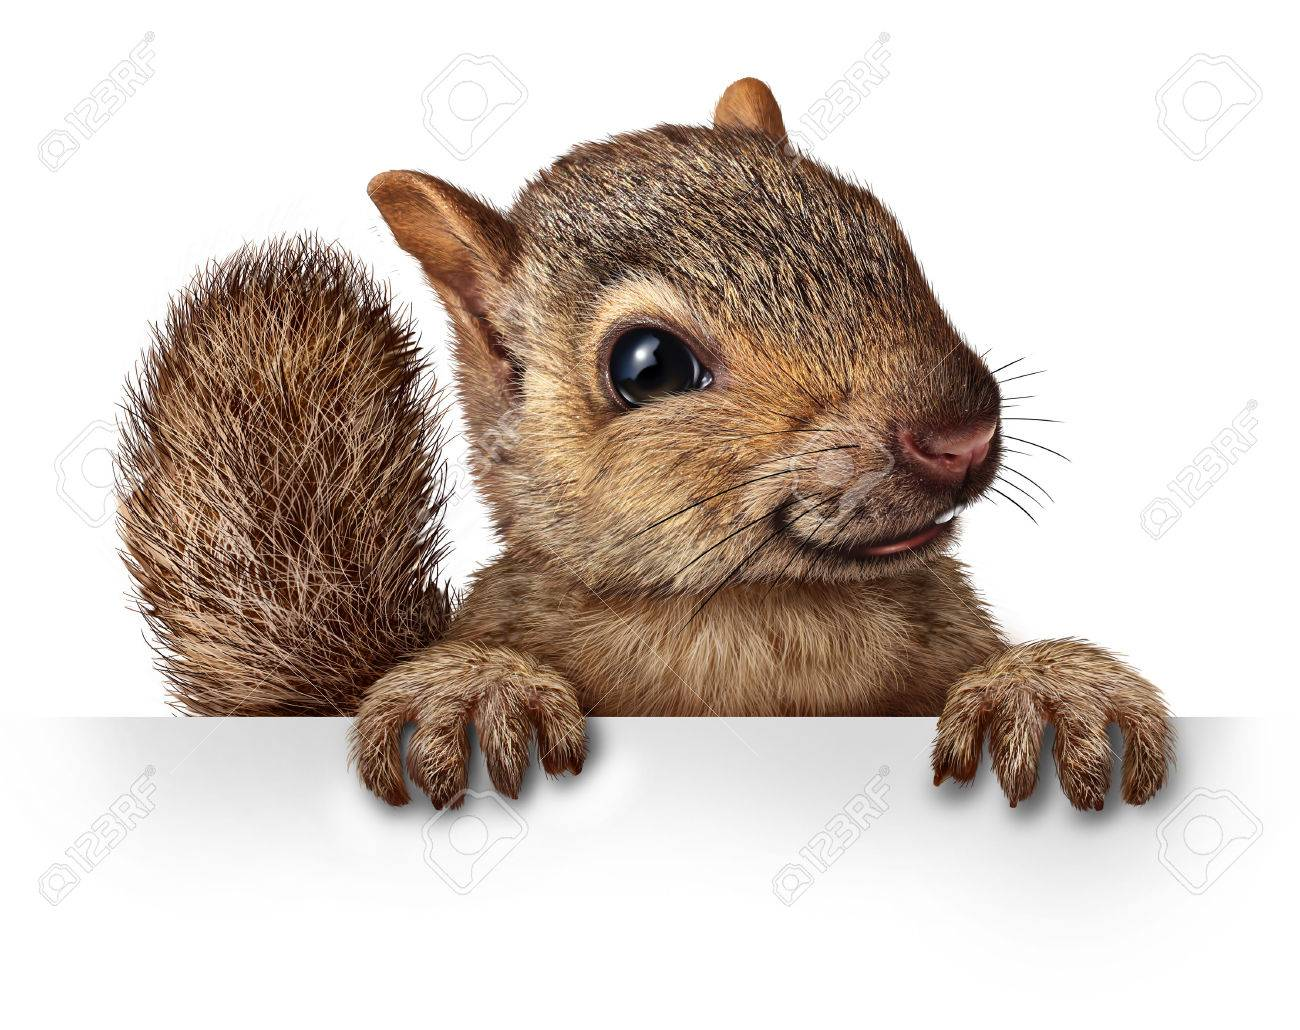 squirrel sign images u0026 stock pictures royalty free squirrel sign